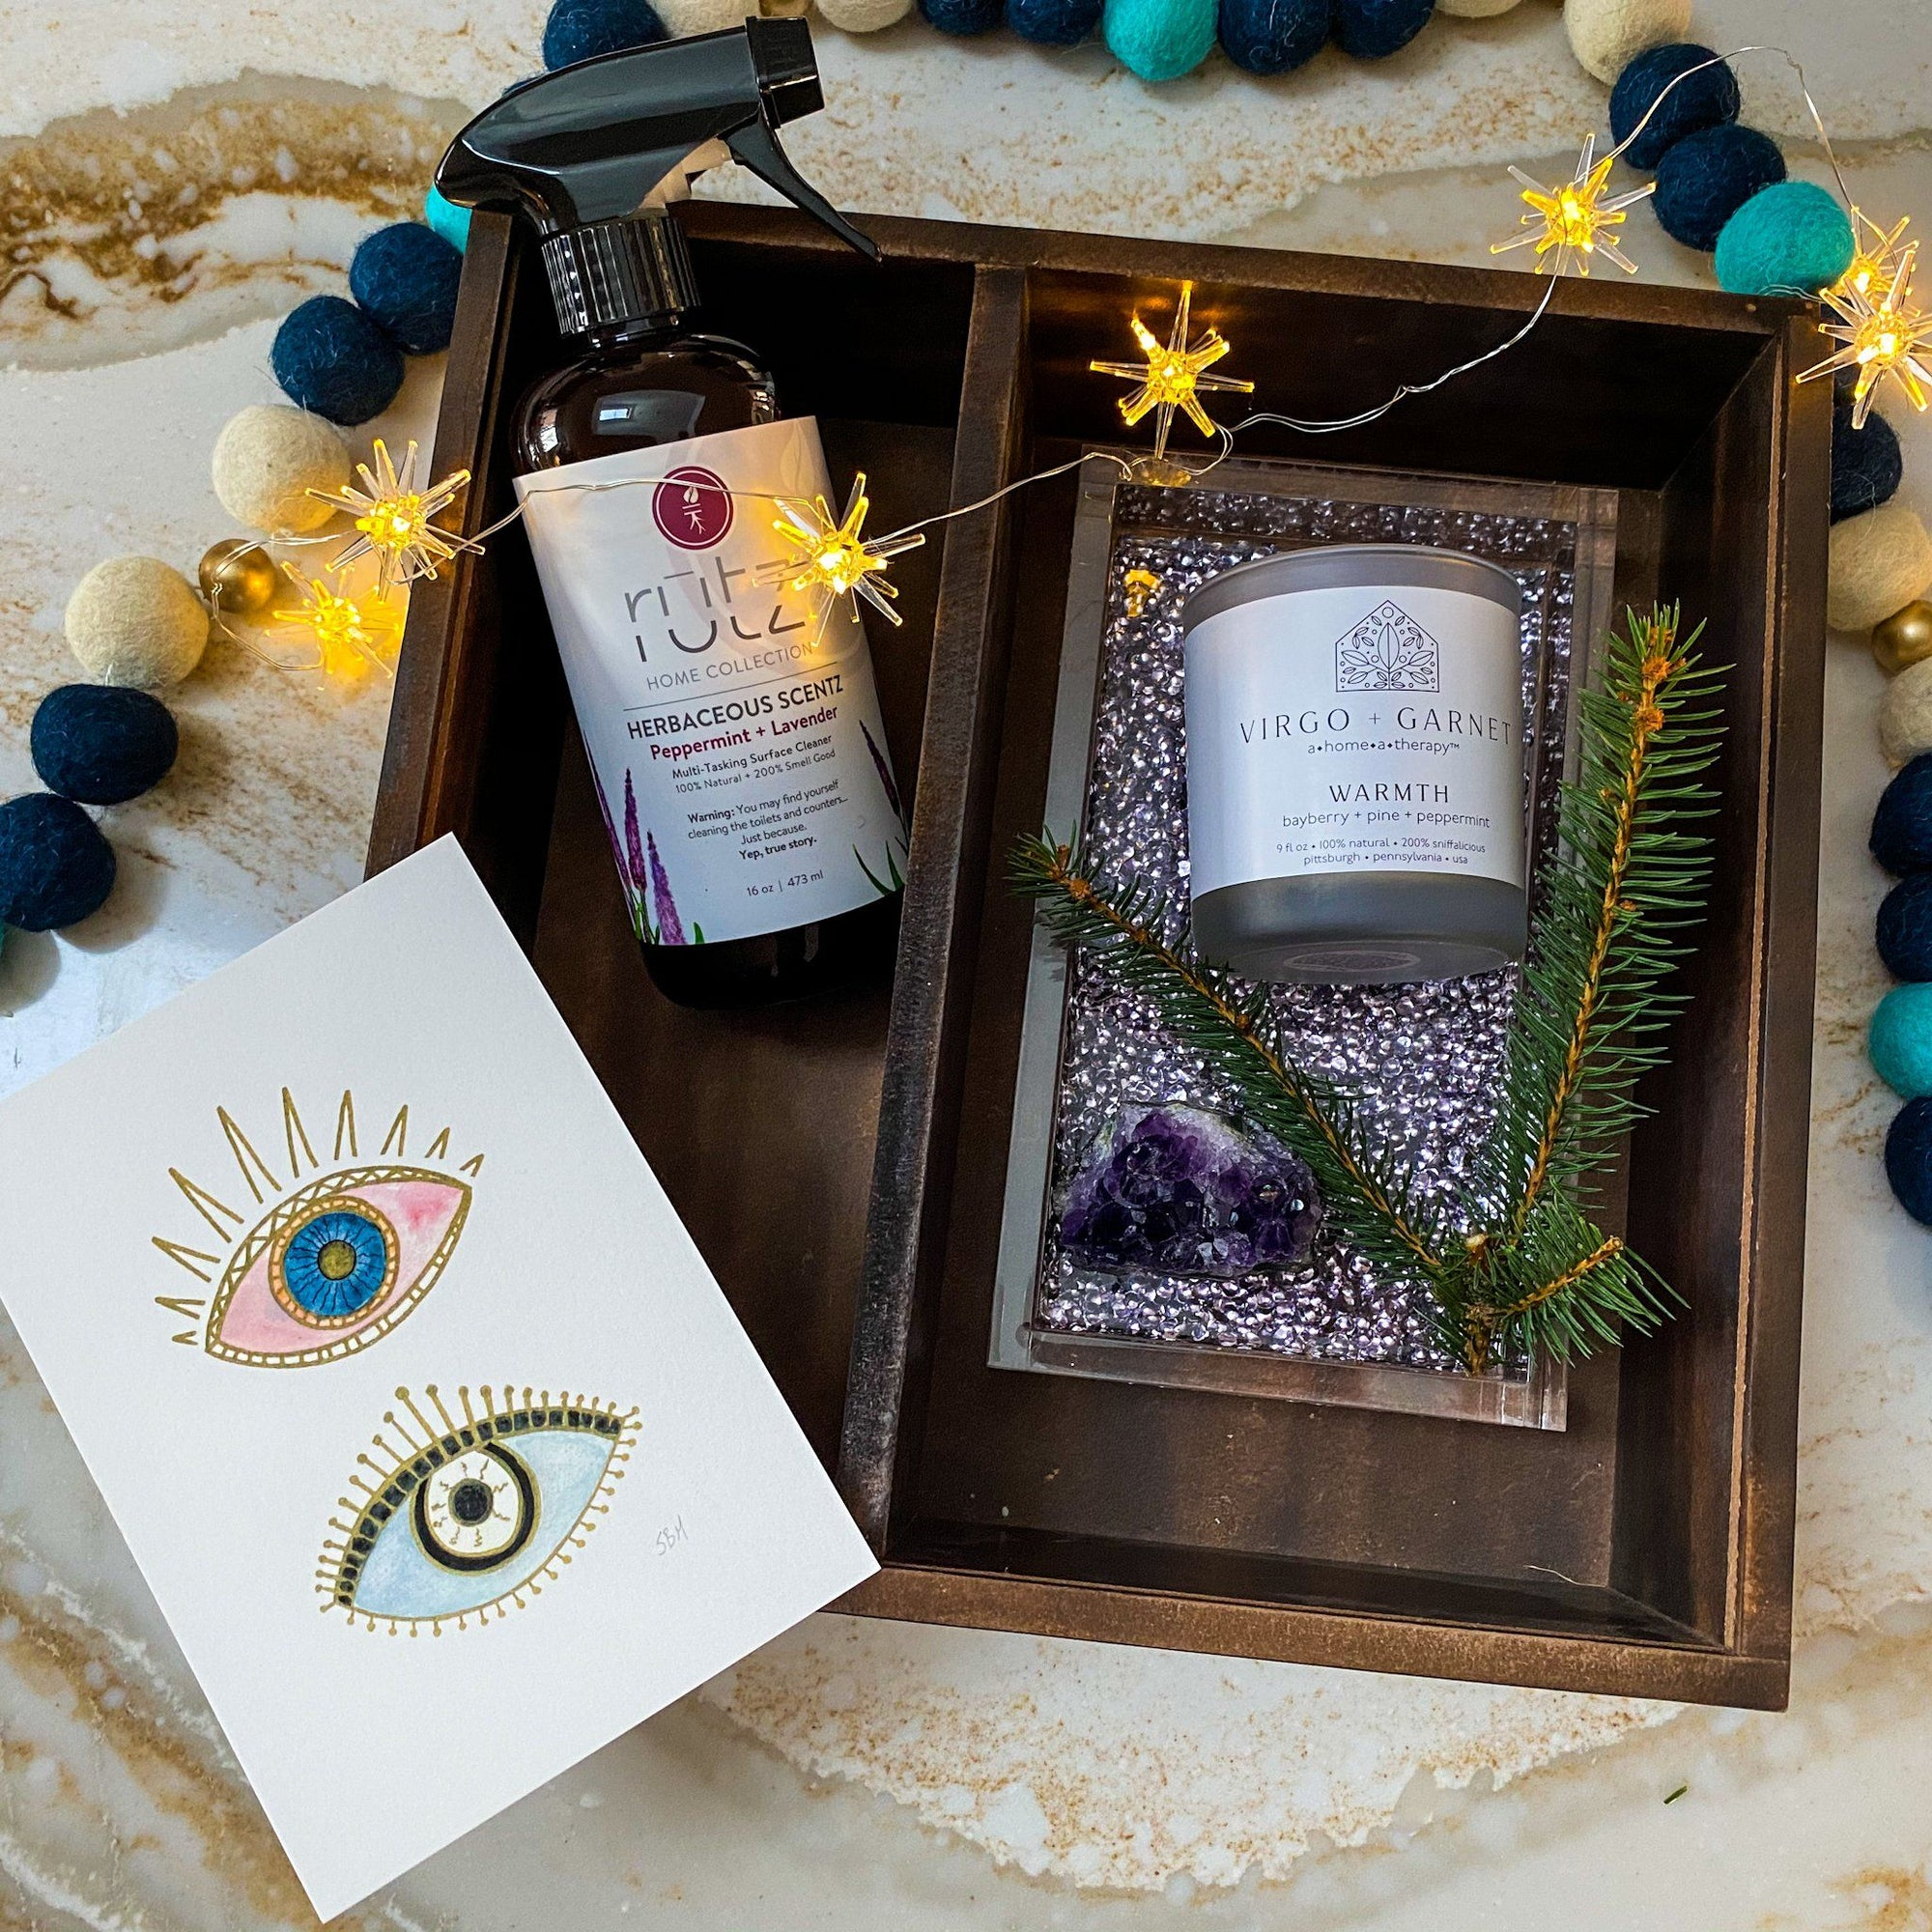 Lavender Acrylic Tray Gift Set gift box Virgo + Garnet | Beautifully Balanced Living